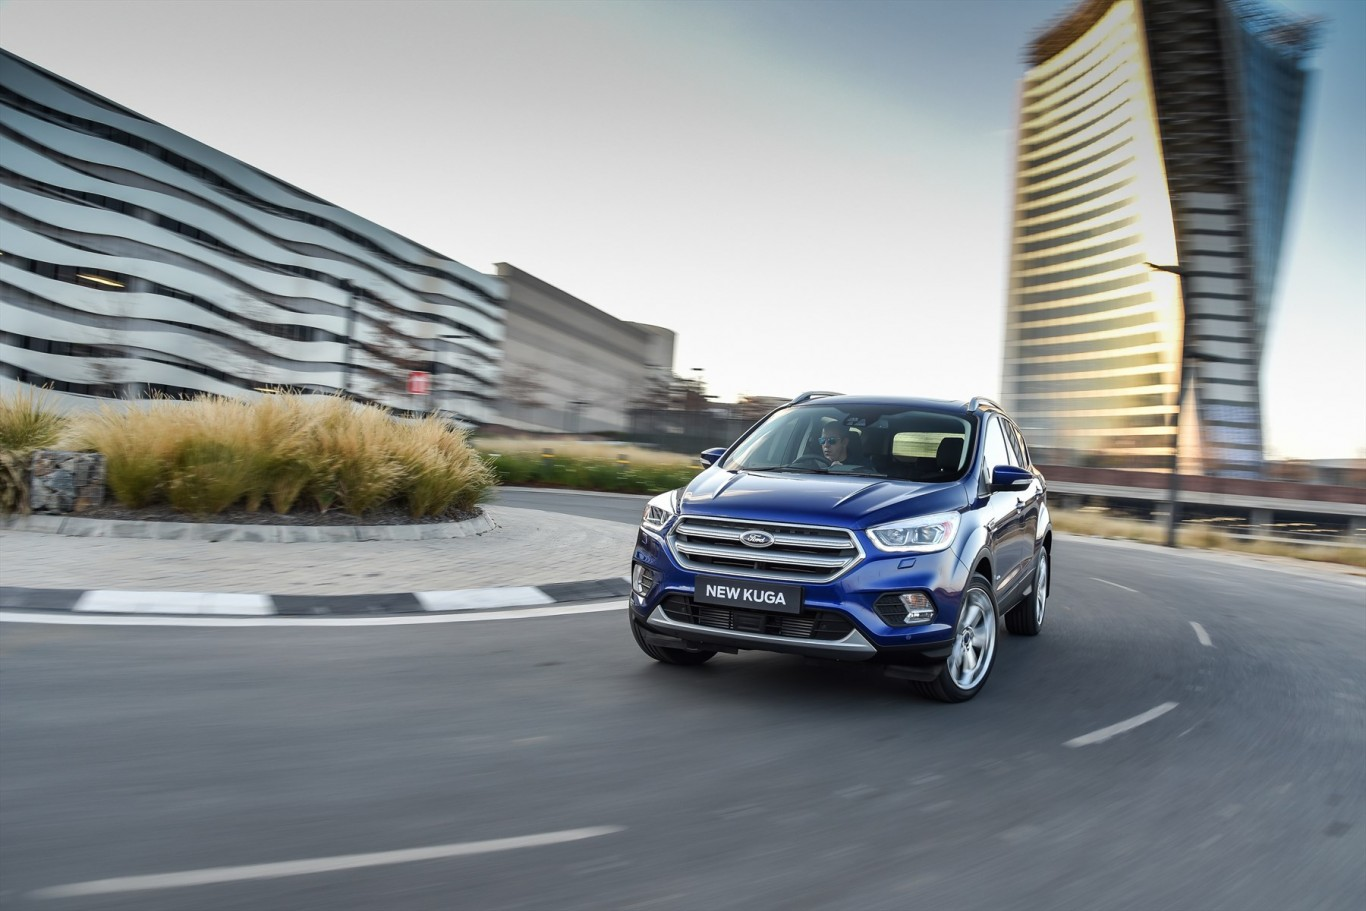 New Kuga Builds on Ford's Global SUV Expertise and Heritage